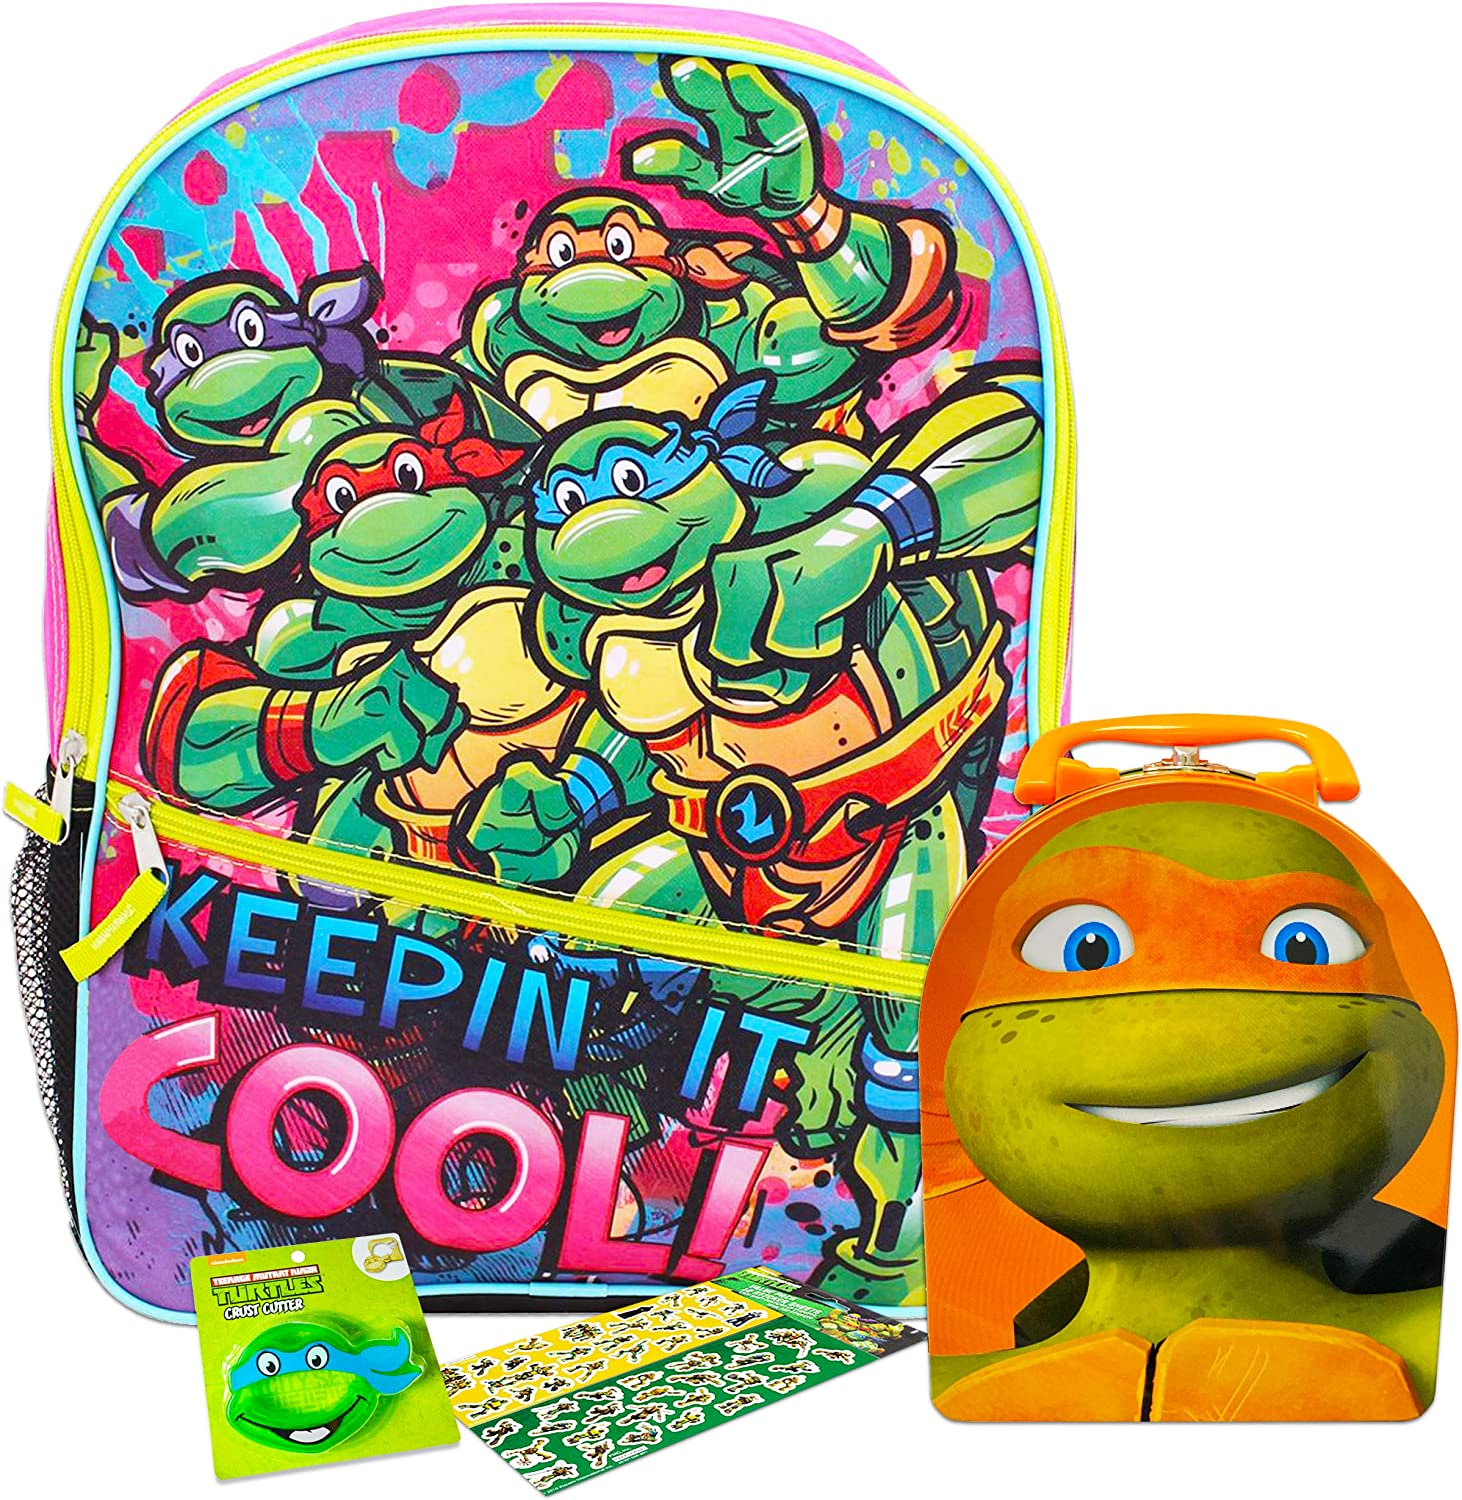 Teenage Mutant Ninja Turtles Backpack and Lunch Box for Girls Kids Bundle with Sandwich Cutter and TMNT Stickers (Ninja Turtles School Supplies)